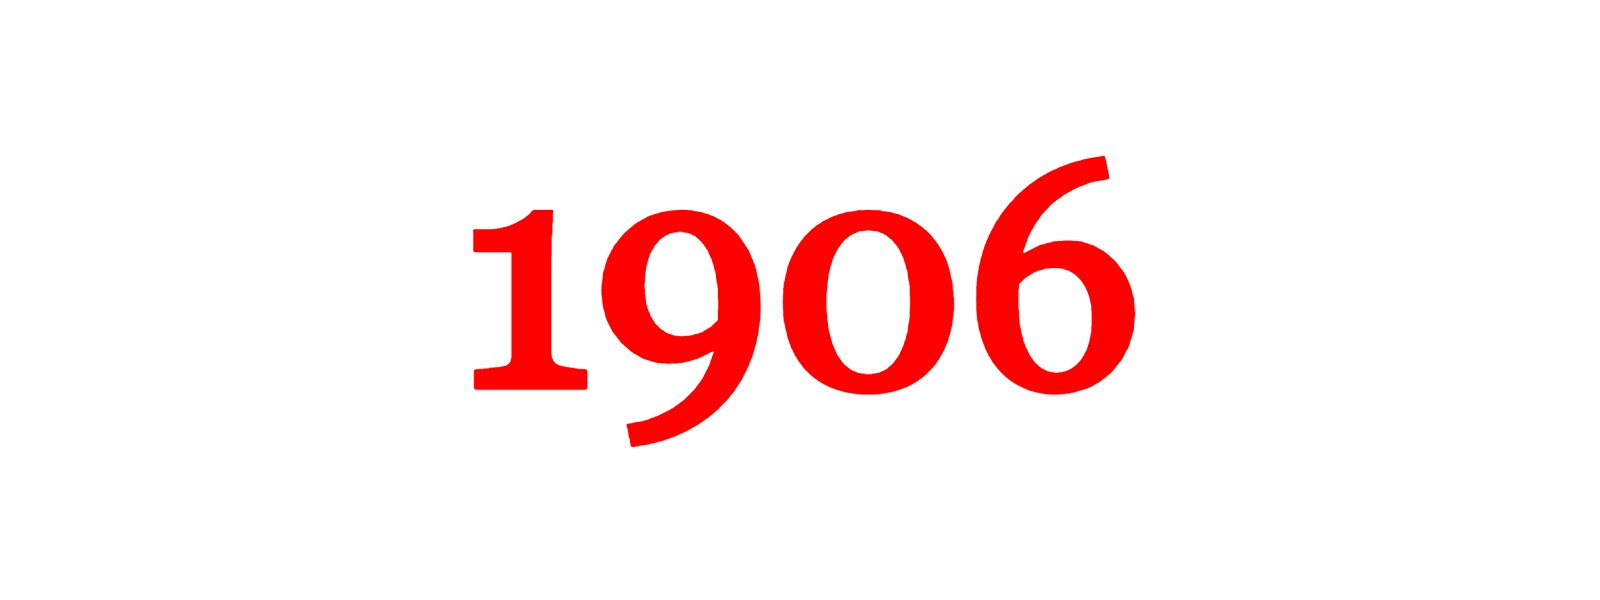 If you are COVID positive and still at home, call 1906